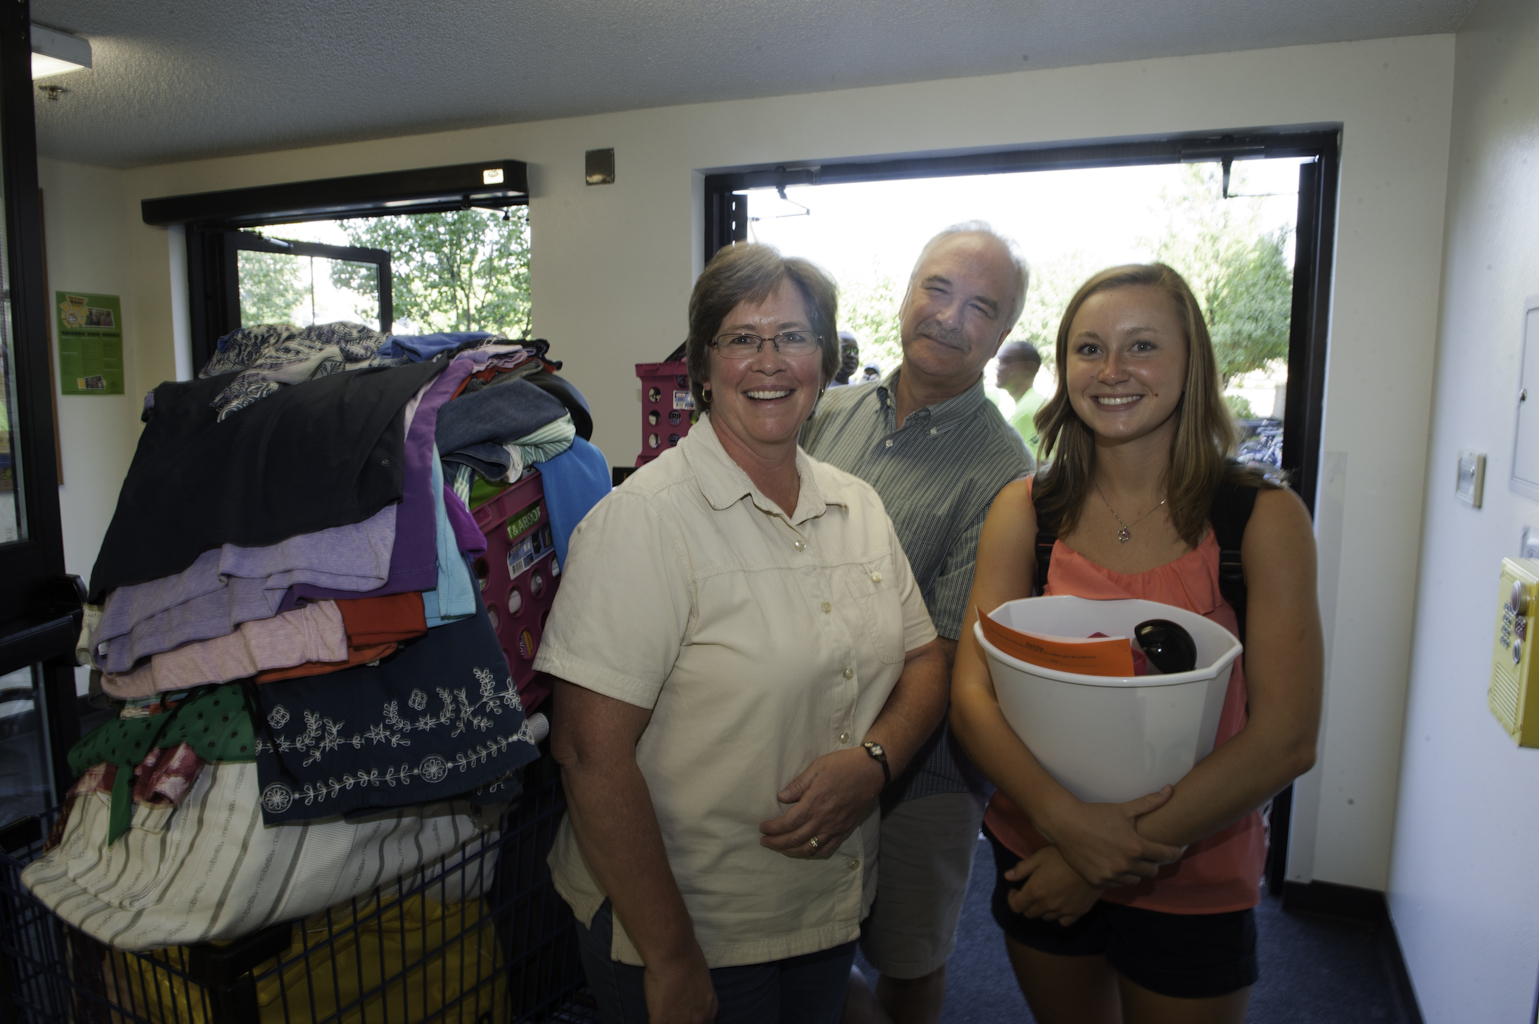 Freshman Molly Hertenstein got a lot of help from her mom and dad on Move-in Day.